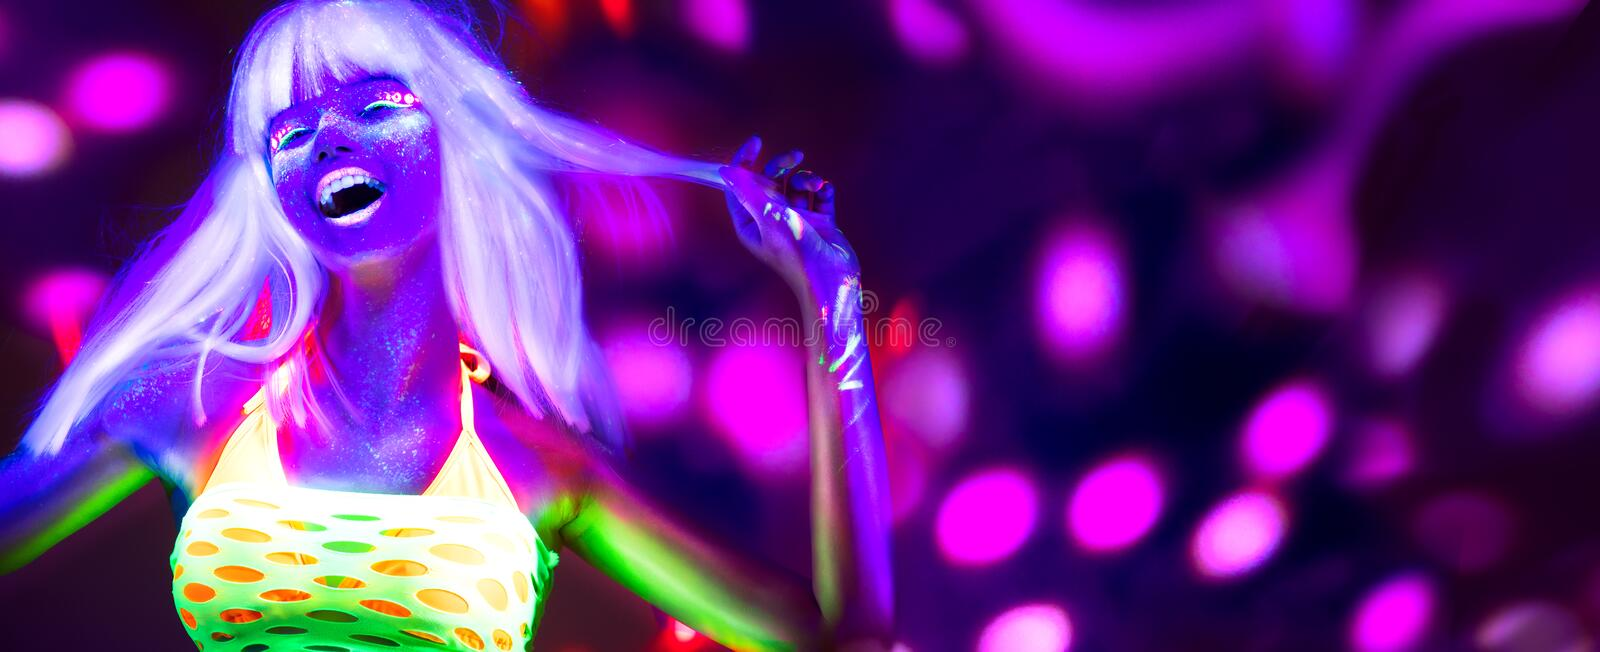 Neon Woman dancing. Fashion model woman in neon light, portrait of beautiful model with fluorescent makeup. Neon Woman dancing. Fashion model woman in neon light royalty free stock image